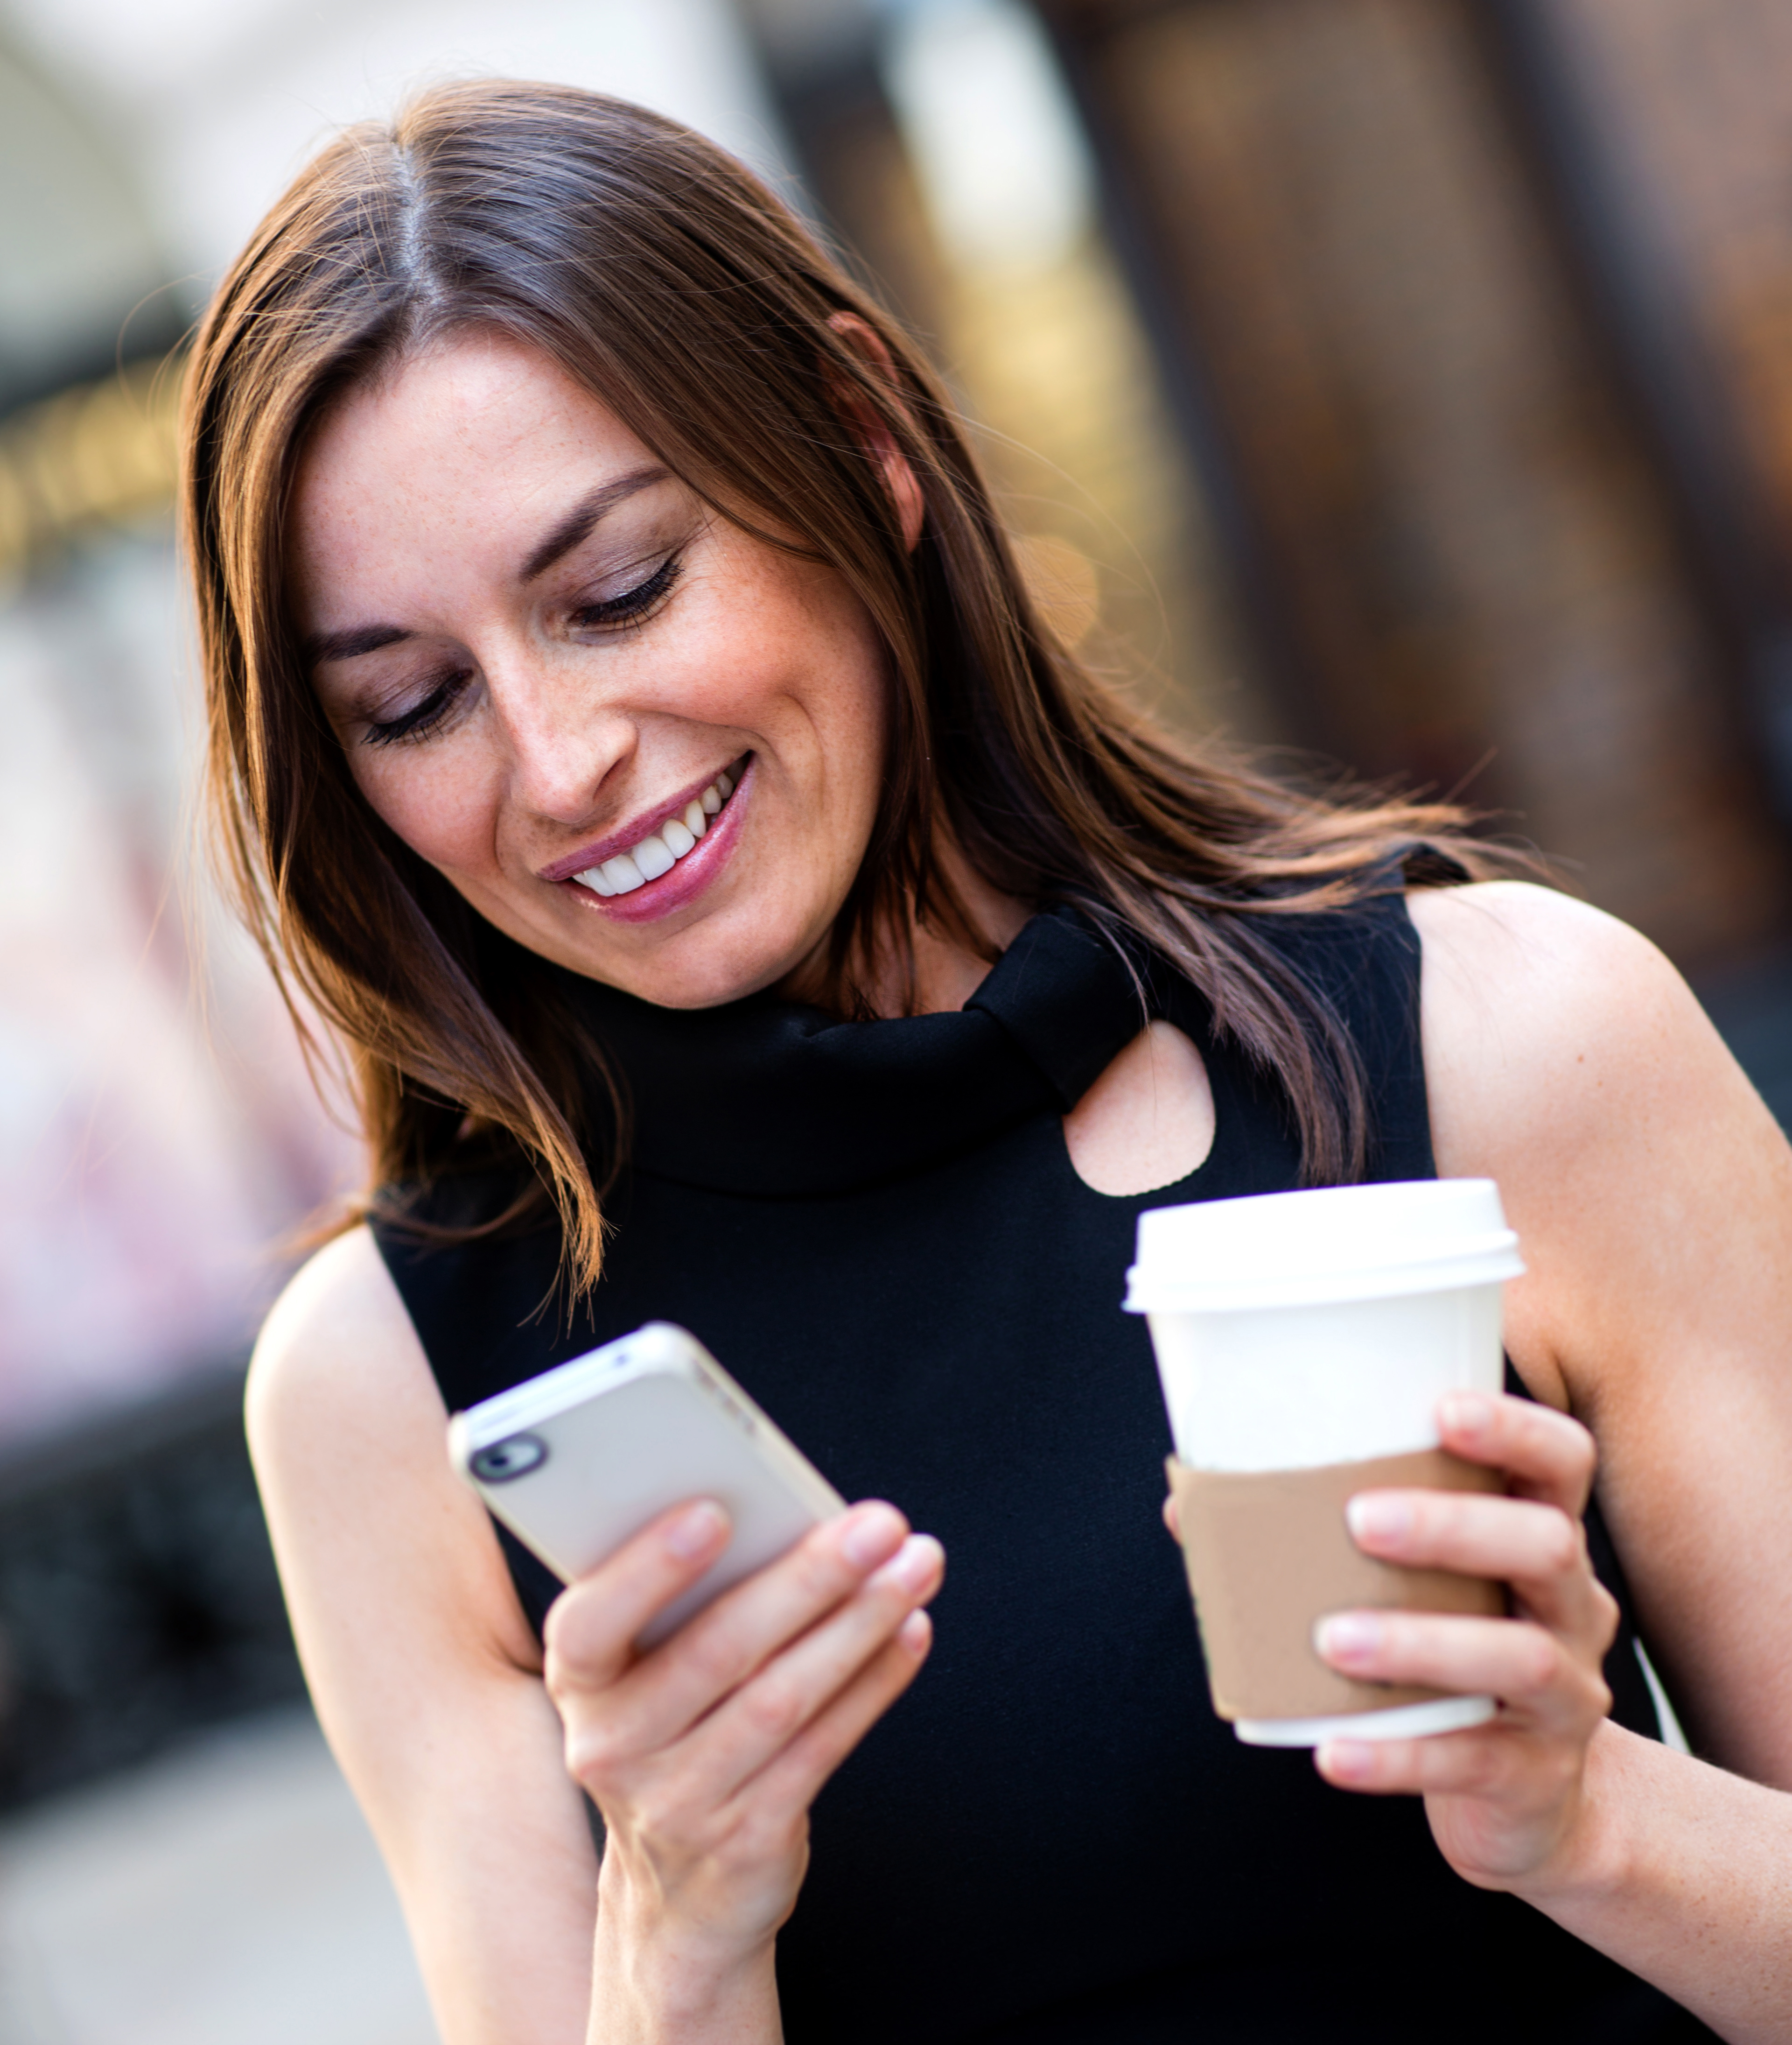 Busy business woman texting; on-the-go lifestyle and unified communications